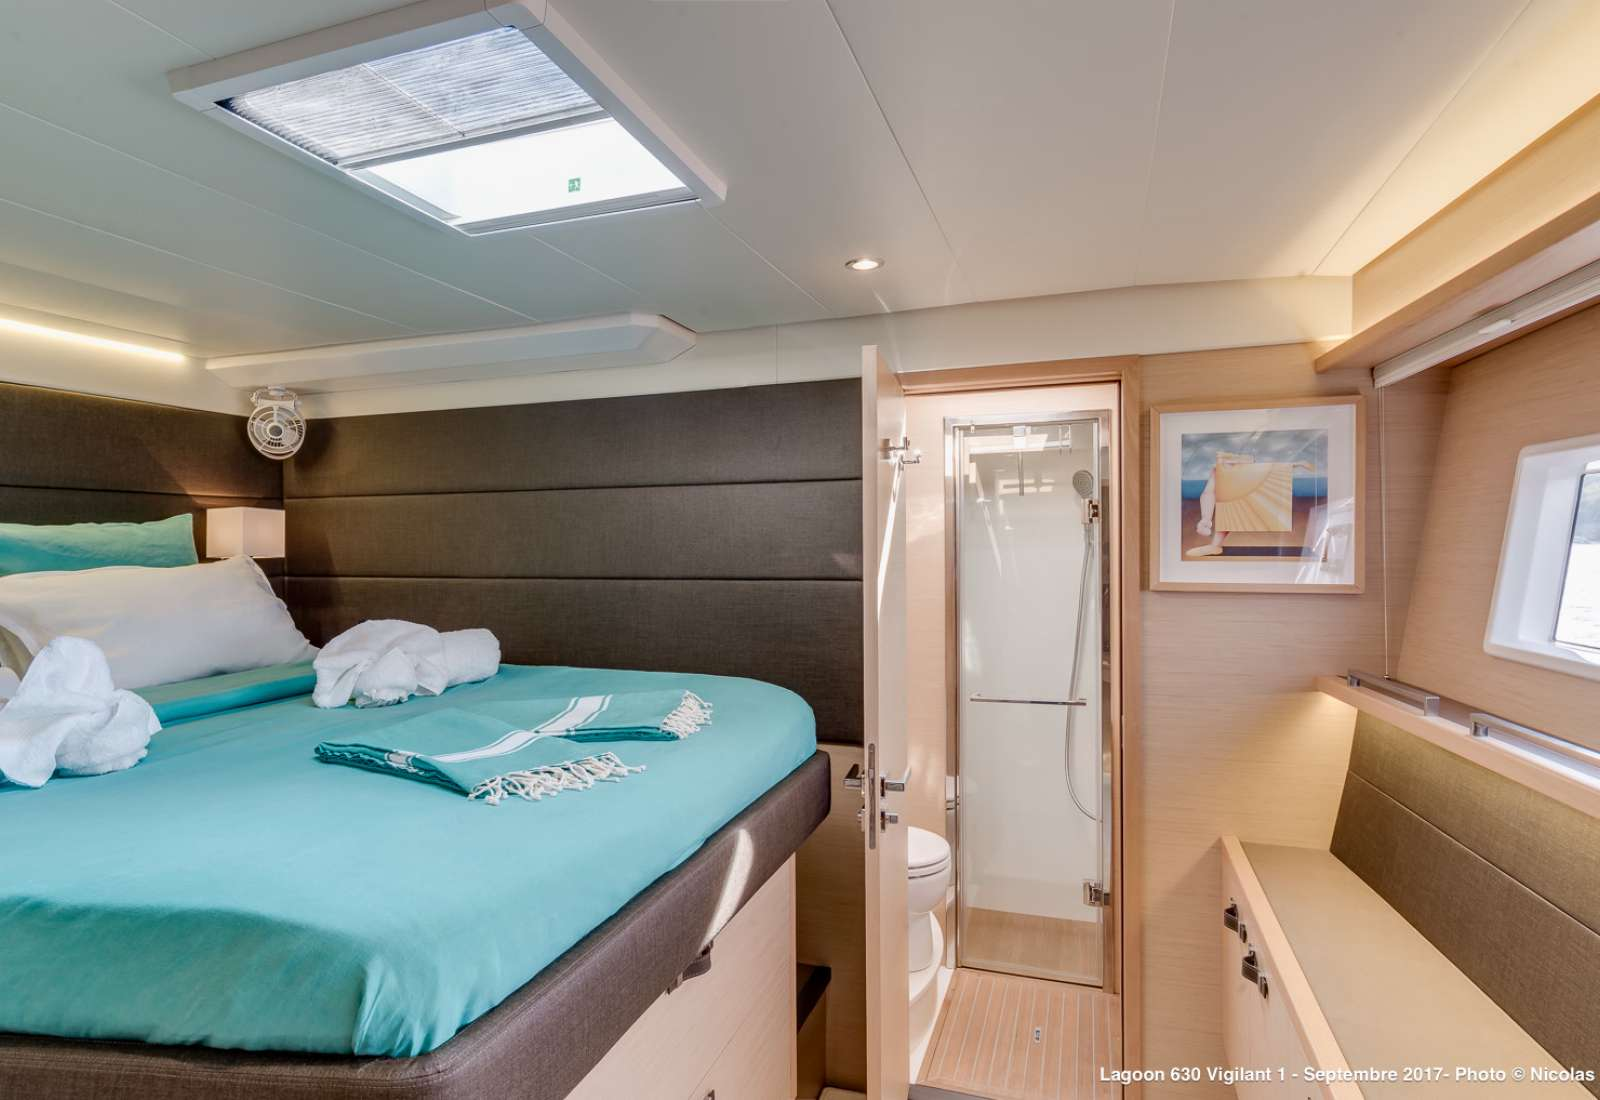 One of the 3 double bed cabins